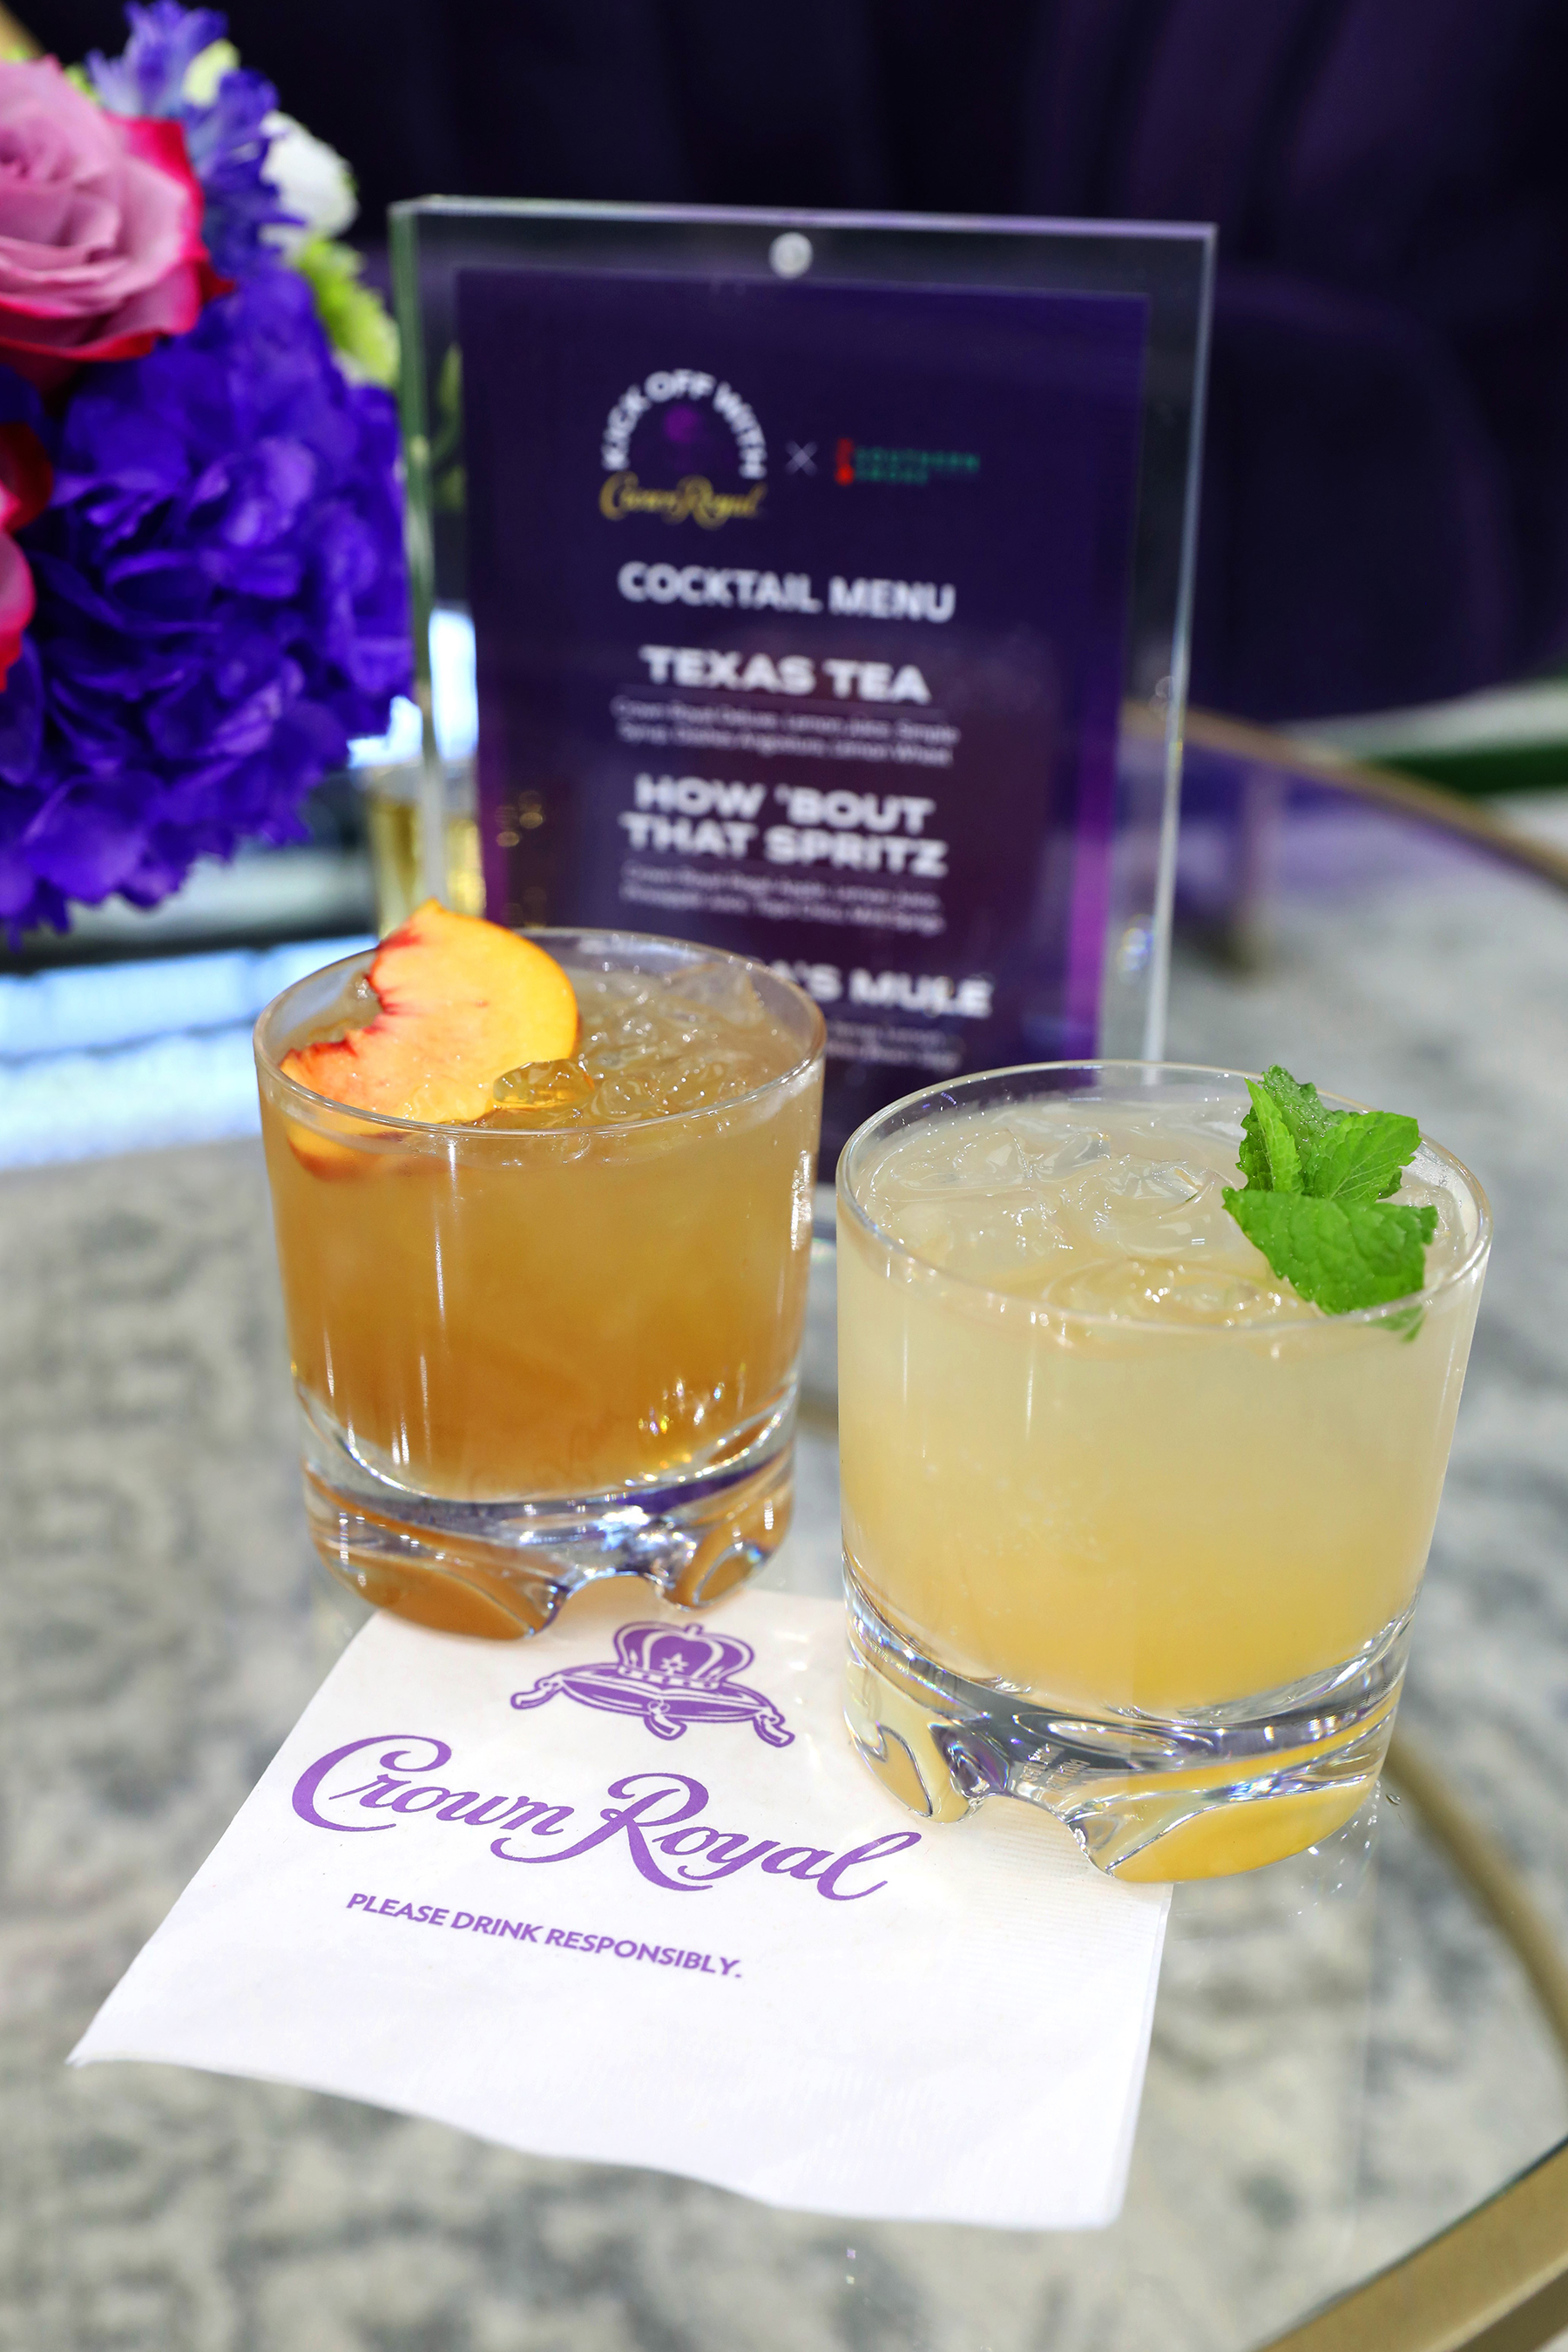 To kick off the start of the NFL regular season, Crown Royal and Southern Smoke Foundation hosted a special Industry Night of Service for hospitality and stadium workers at the home of the Dallas Cowboys, AT&T Stadium on Wednesday, September 8.